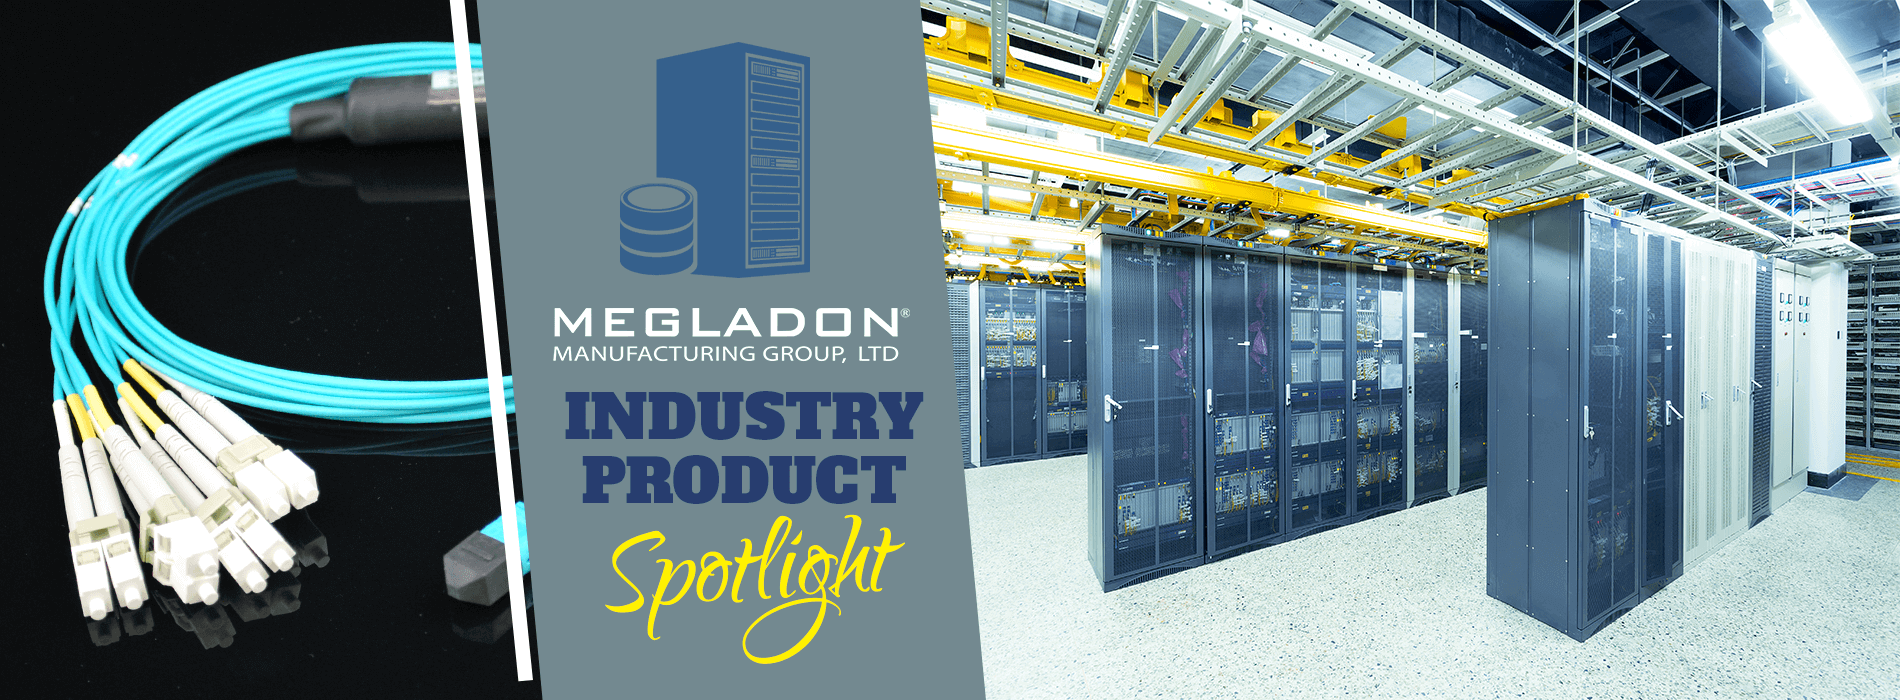 Industry Product Spotlight - Data Center Products